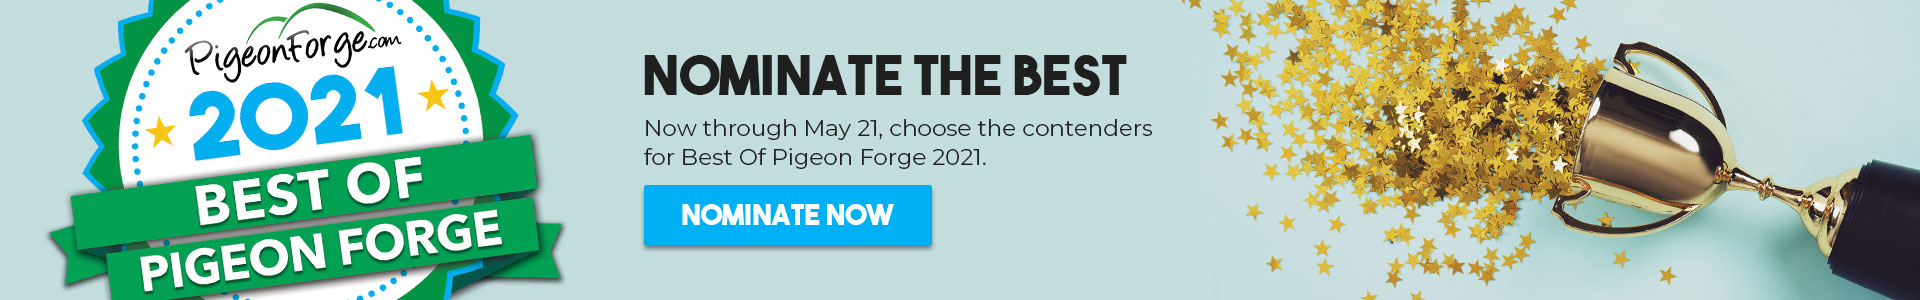 Now through May 21, choose the contenders for Best Of Pigeon Forge 2021. Click to nominate.